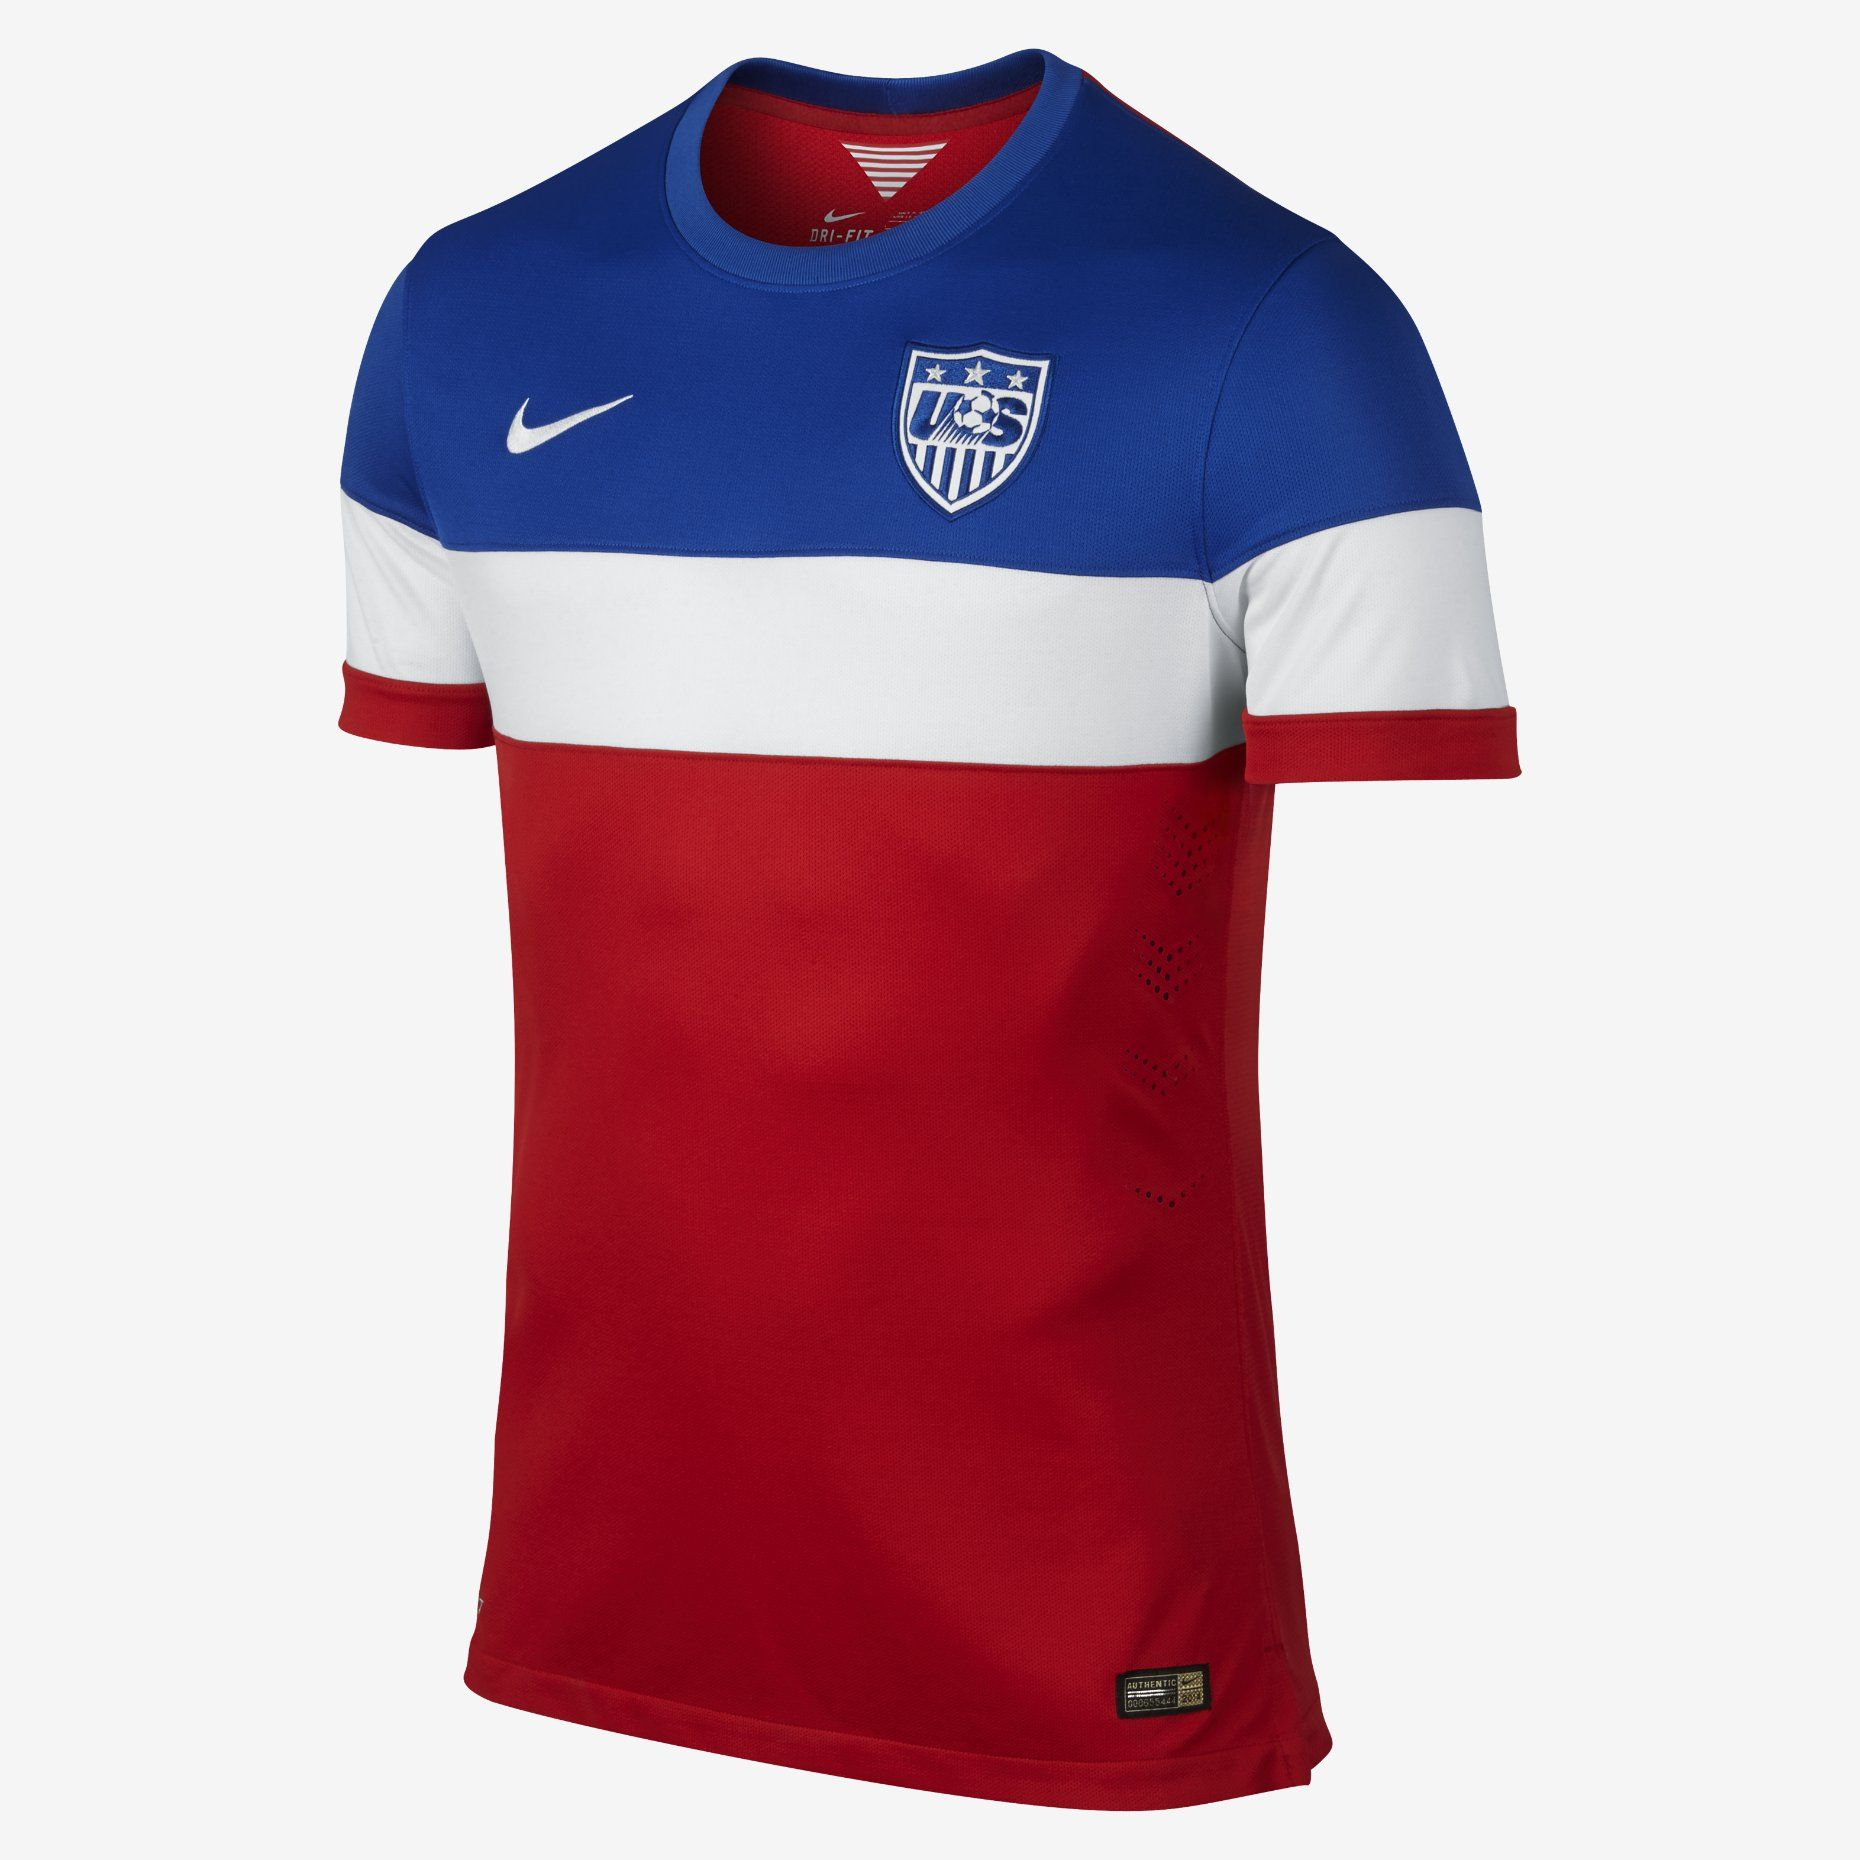 newest b68e1 585d4 2014 U.S. Match Men's Soccer Jersey. Nike Store | wear ...